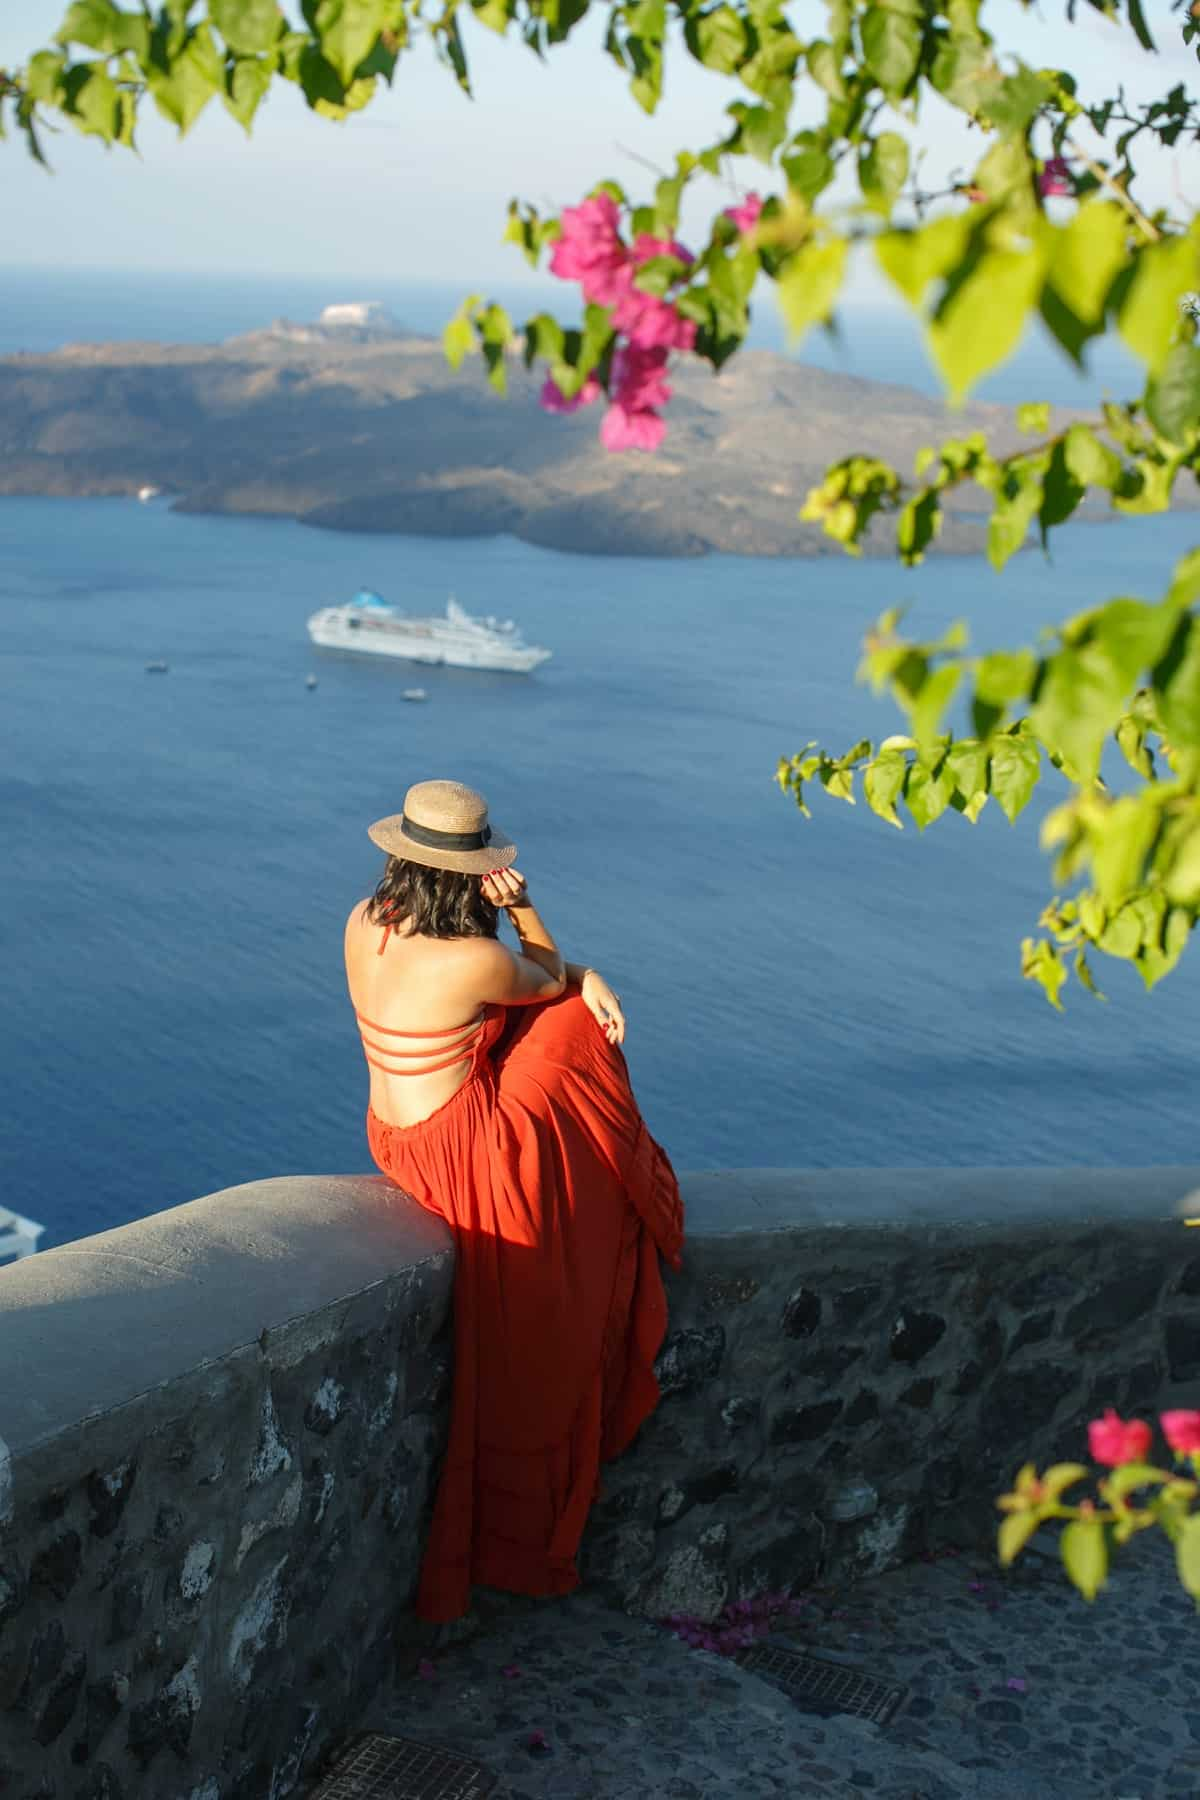 Free People Extratropical Dress - maxi dresses - Santorini Greece travel outfit - My Style Vita @mystylevita